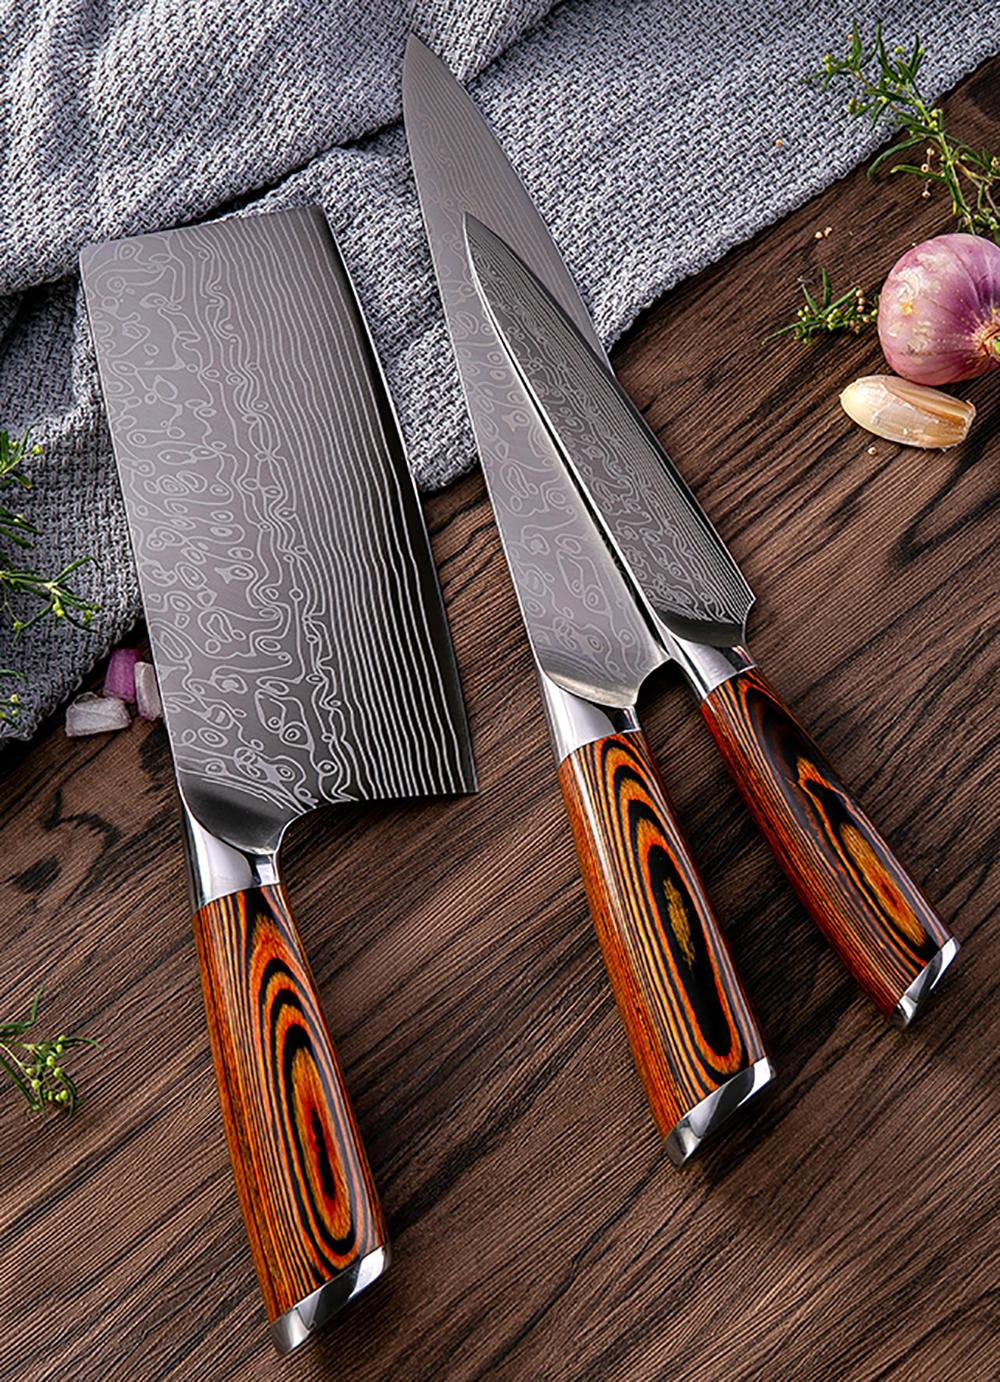 Quality Kitchen Knife Set Damascus Japanese Kitchen Sushi Knives Meat Cleaver Sharp Kitchen Knife Cooking Knife 8 Inch Color Wood Handle Large Kitchen Knives Names Of Kitchen Knives From Georgestore 89 56 Dhgate Com